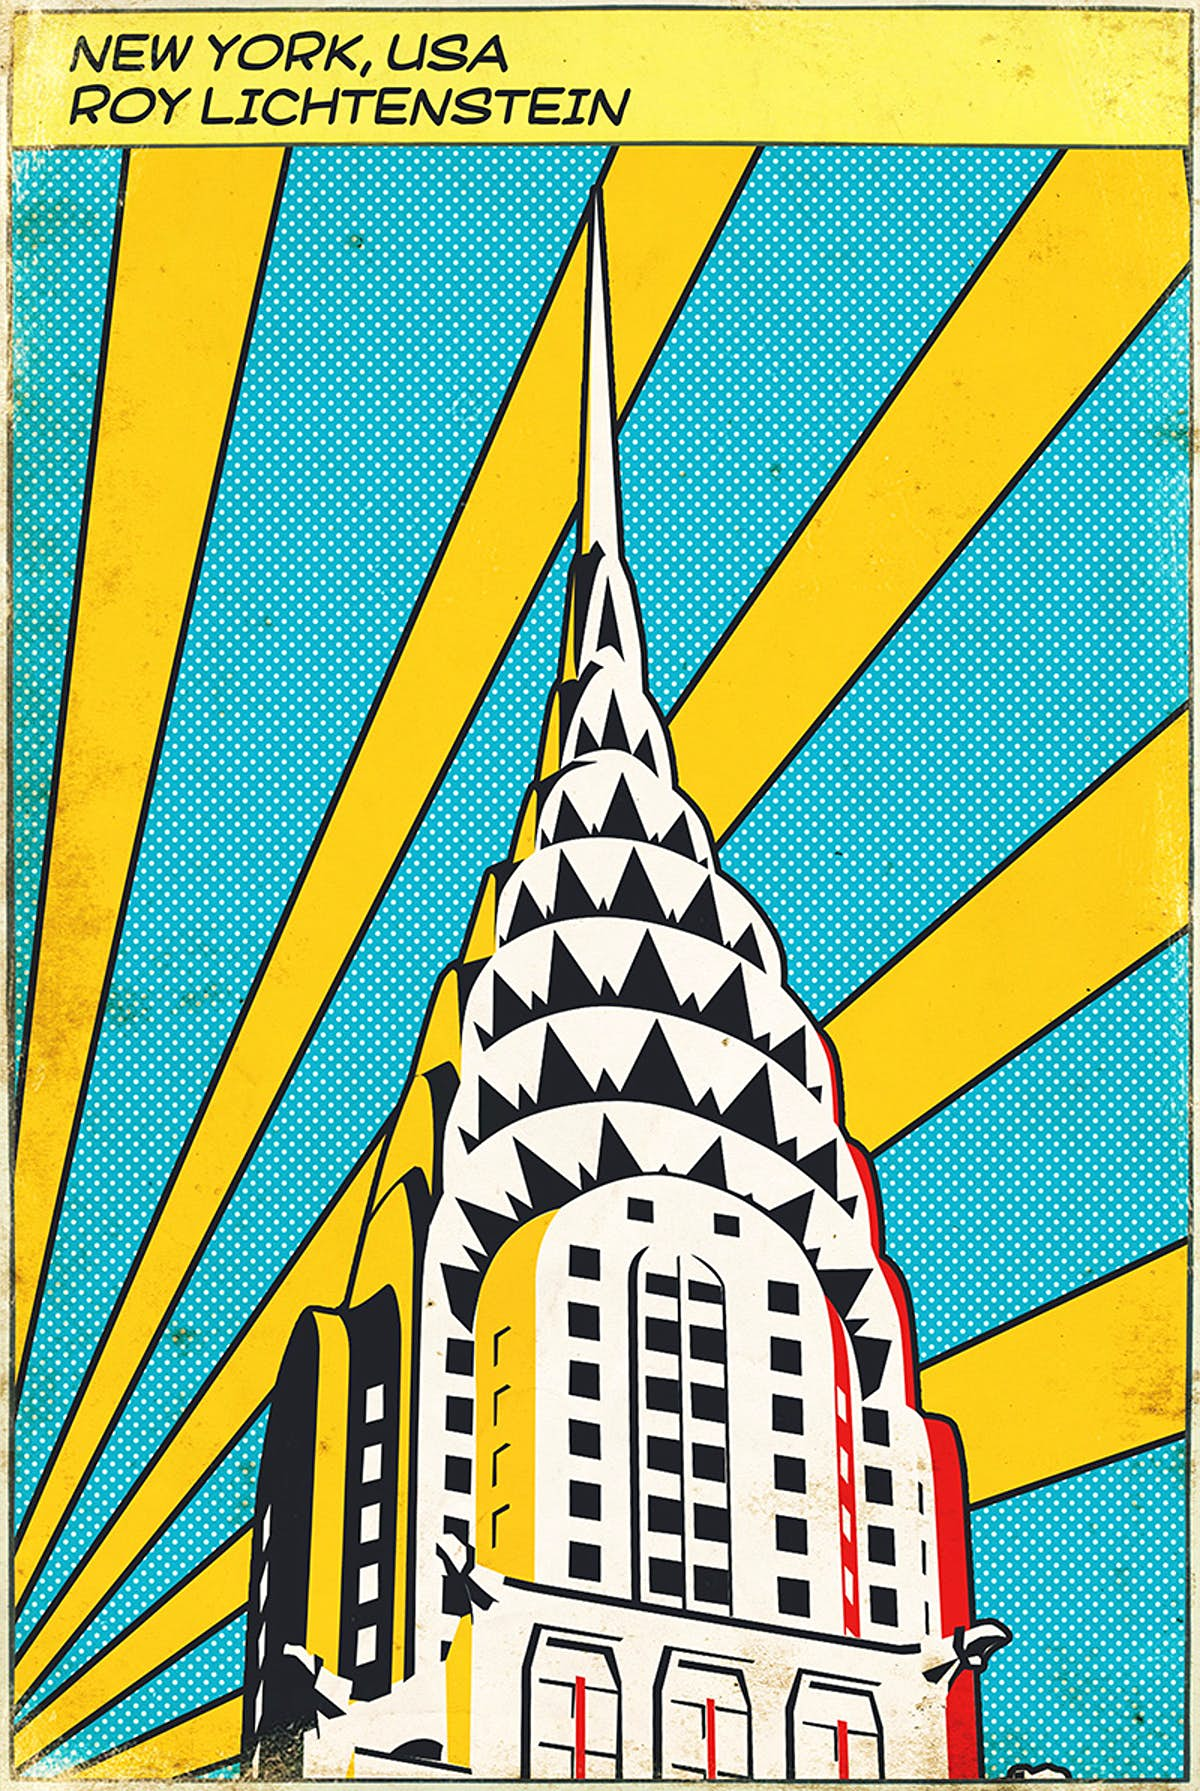 Vintage-style travel posters reveal places in the style of local artists - Lonely Planet